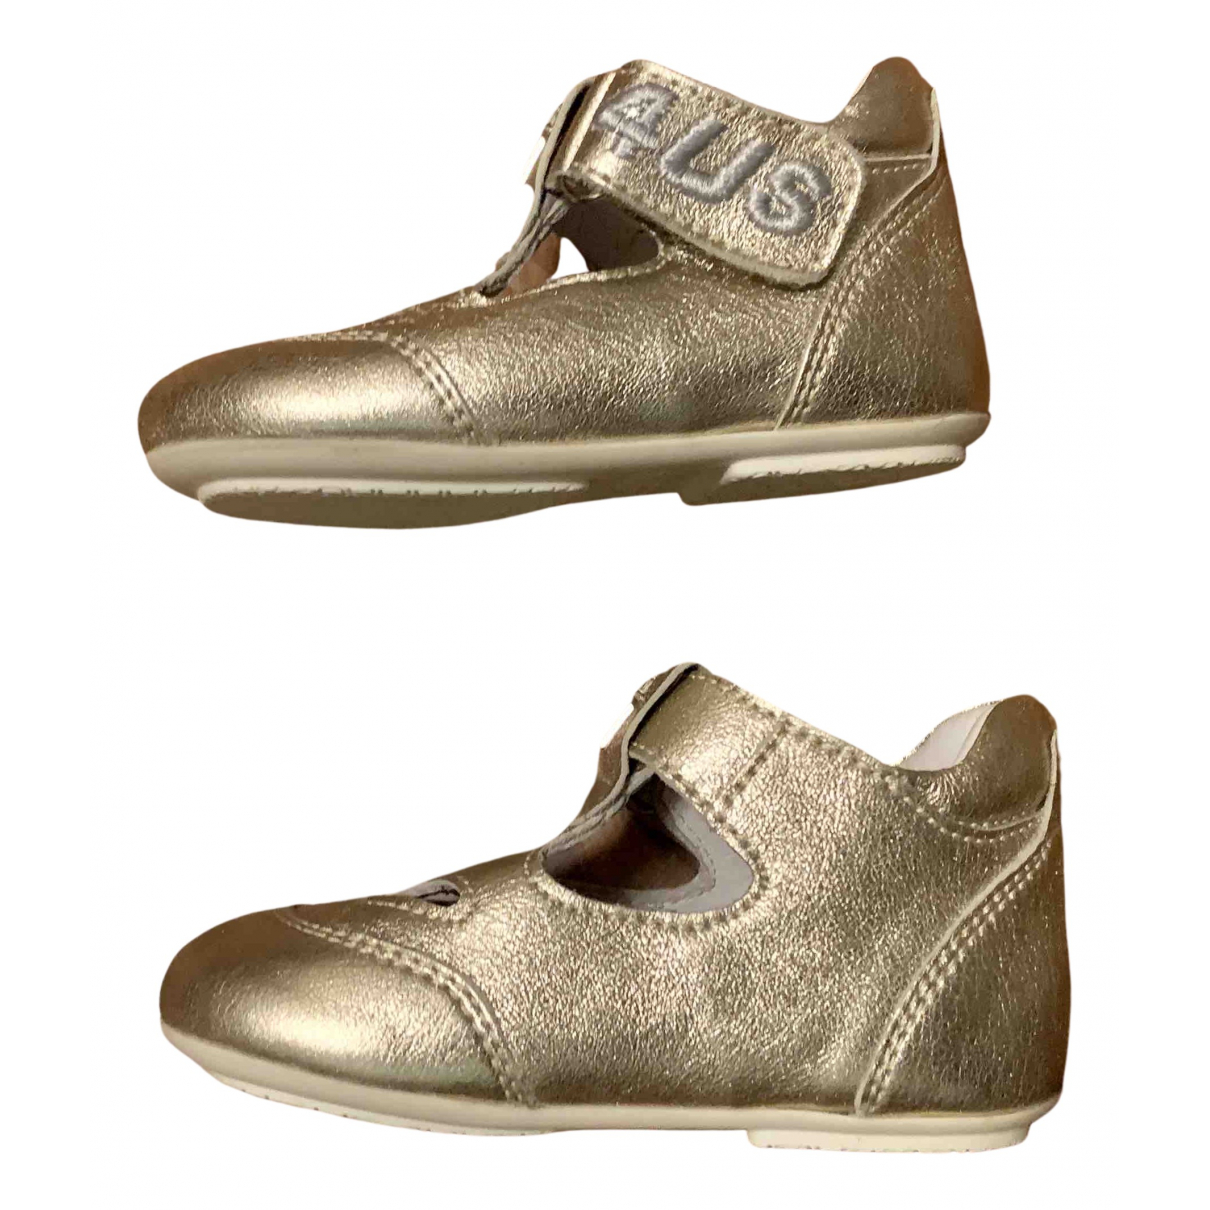 Cesare Paciotti N Gold Leather First shoes for Kids 18 FR